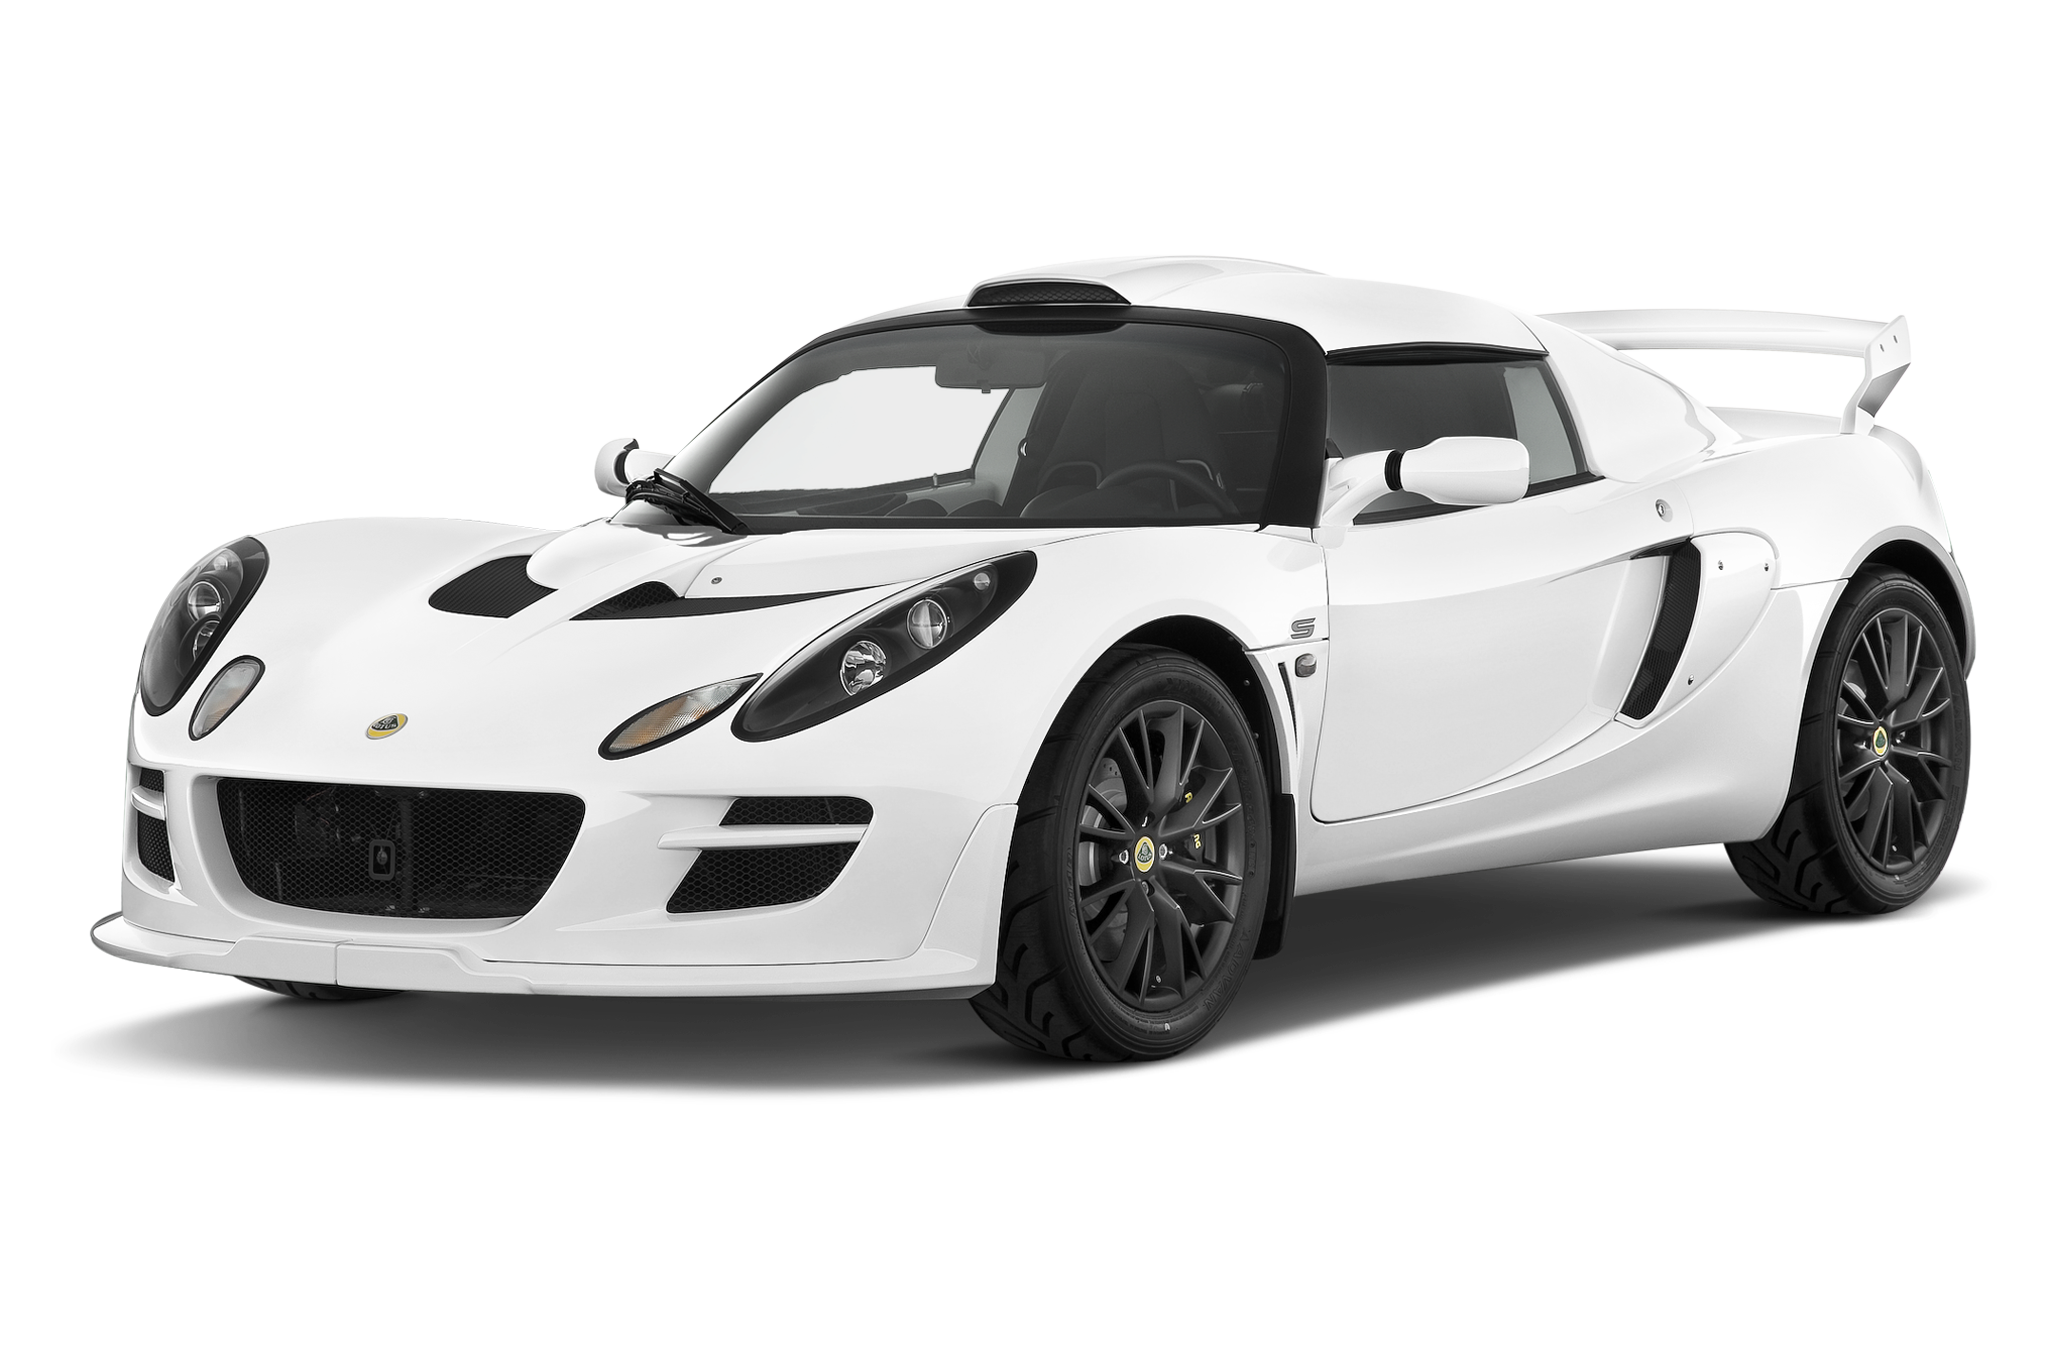 2011 Lotus Exige Reviews and Rating | Motor Trend